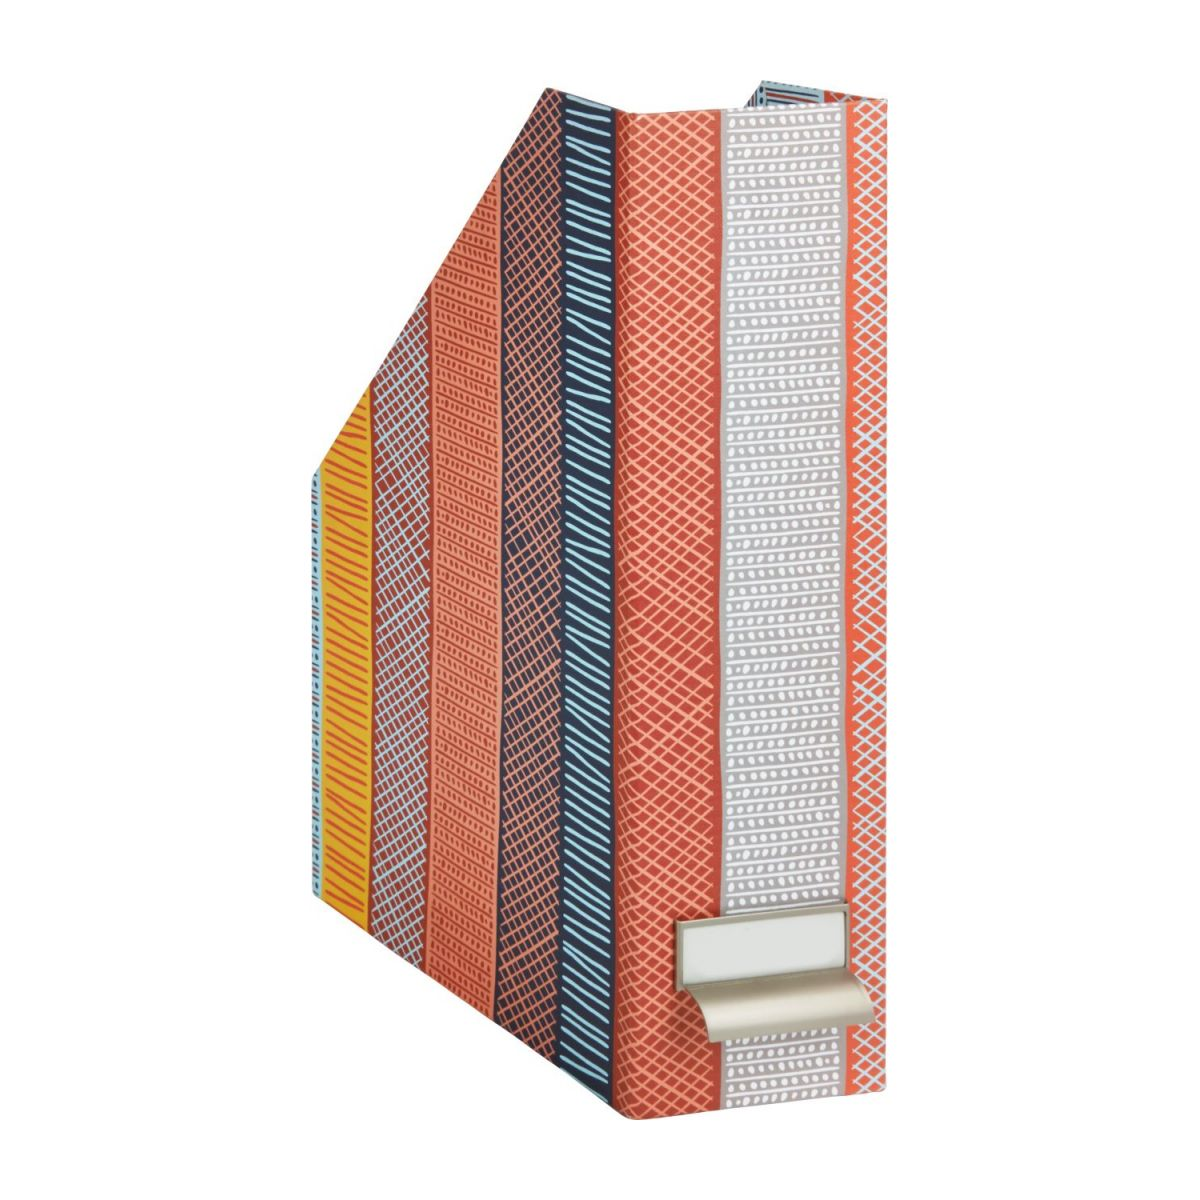 Document storage, with patterns n°3